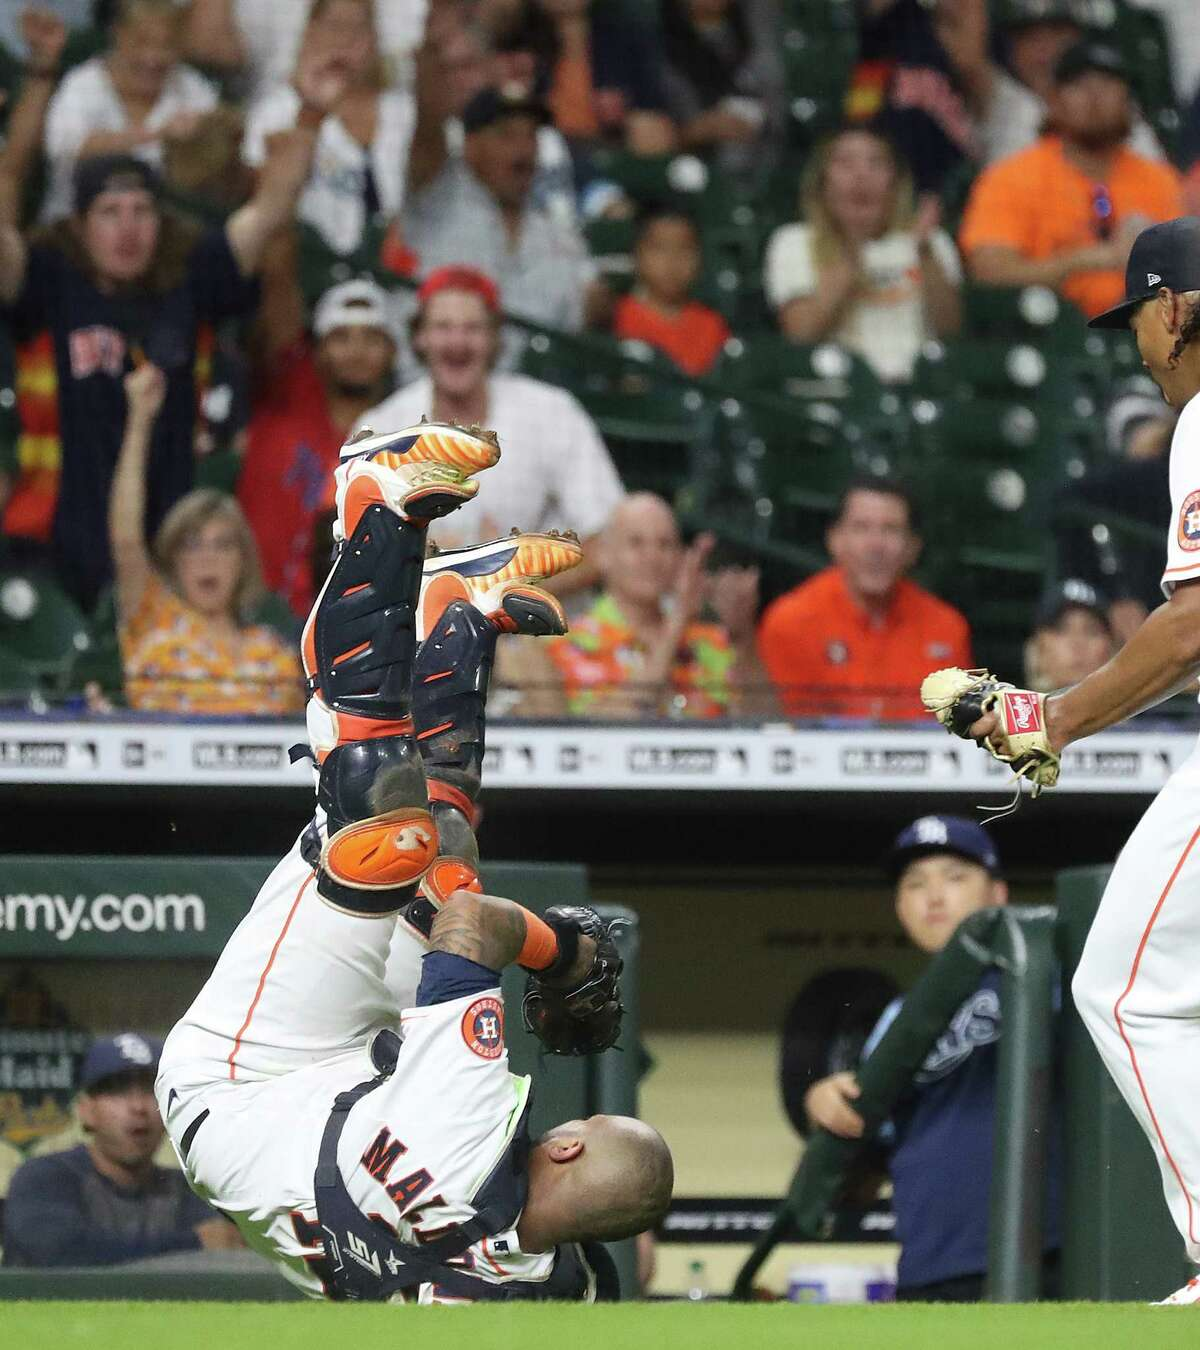 Houston Astros catcher Martin Maldonado (15) catches Tampa Bay Rays Brett Phillips' bunt pop out in front of the Rays dugout during the fourth inning of an MLB baseball game at Minute Maid Park, Wednesday, September 29, 2021, in Houston.